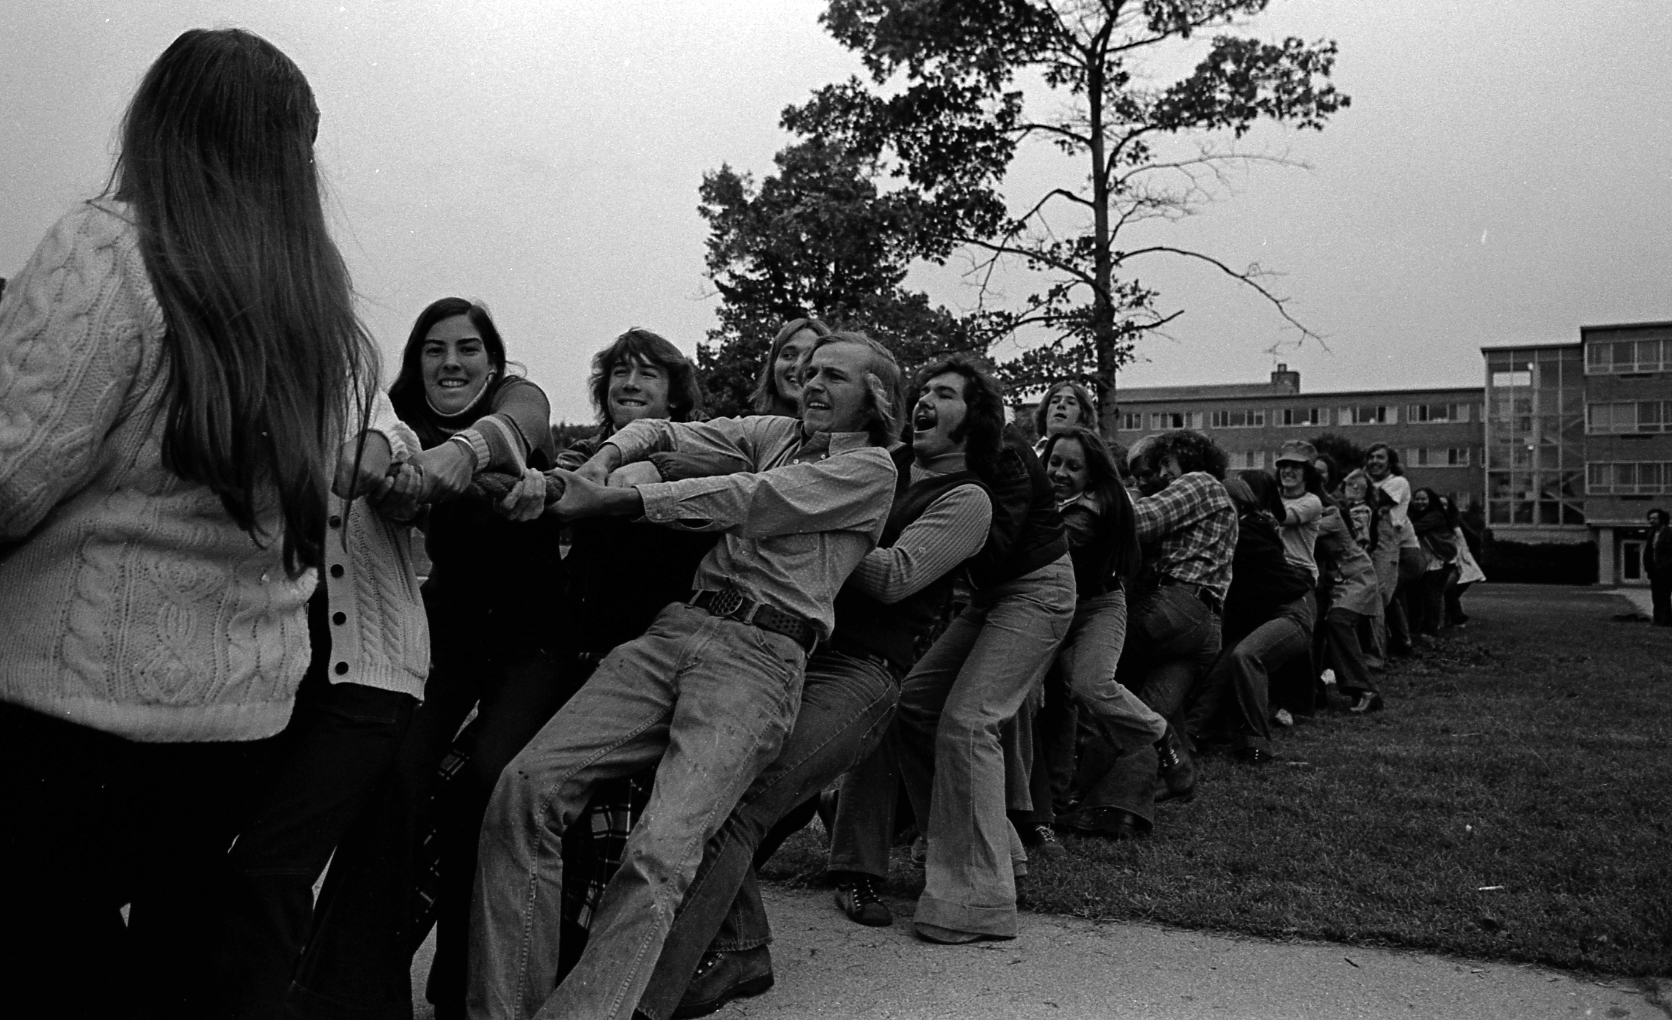 Bailey vs Butterfield tug of war, 1973